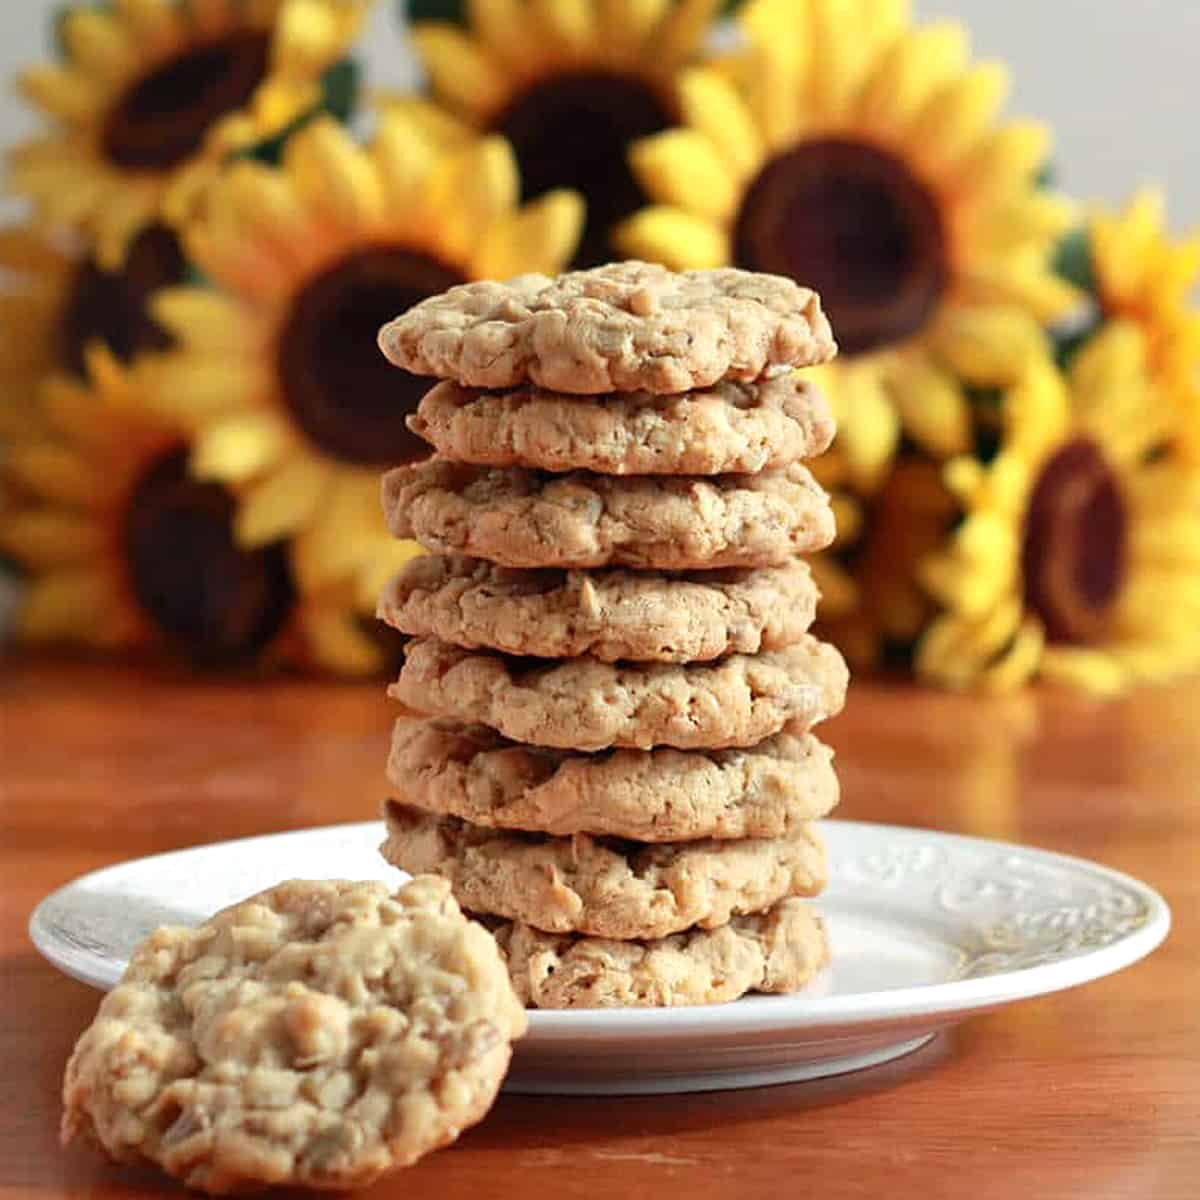 sunflower seed cookies recipe coconut rolled oats Kansas